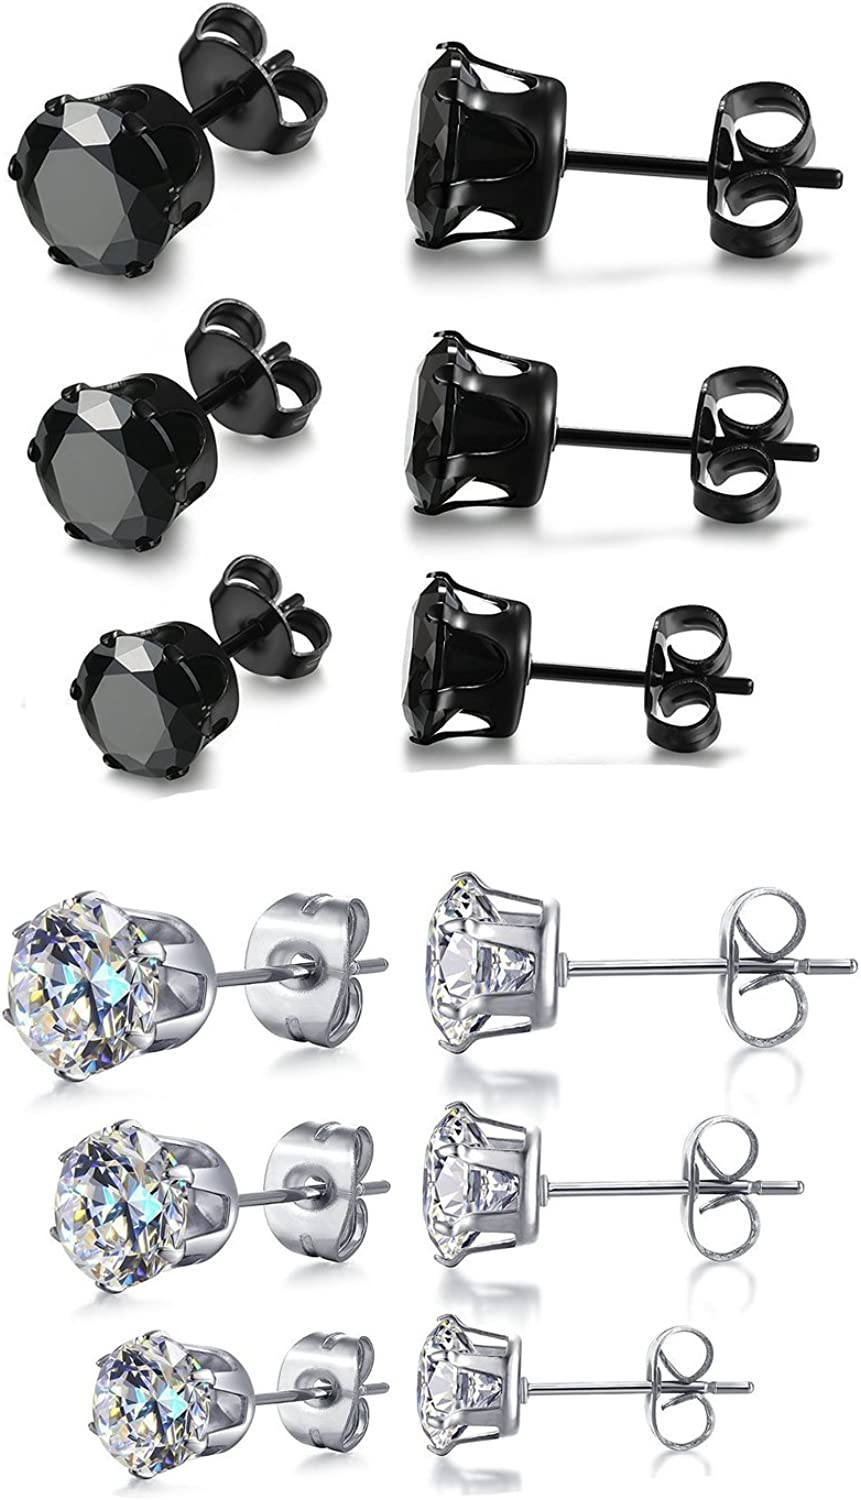 6 Pair Stainless Steel Mens Womens Stud Earrings Set Black and Clear Round Cubic Zirconia Inlaid Pierced Hypoallergenic 3-5mm(12PCS,3 Pairs Black,3 Pairs Clear)